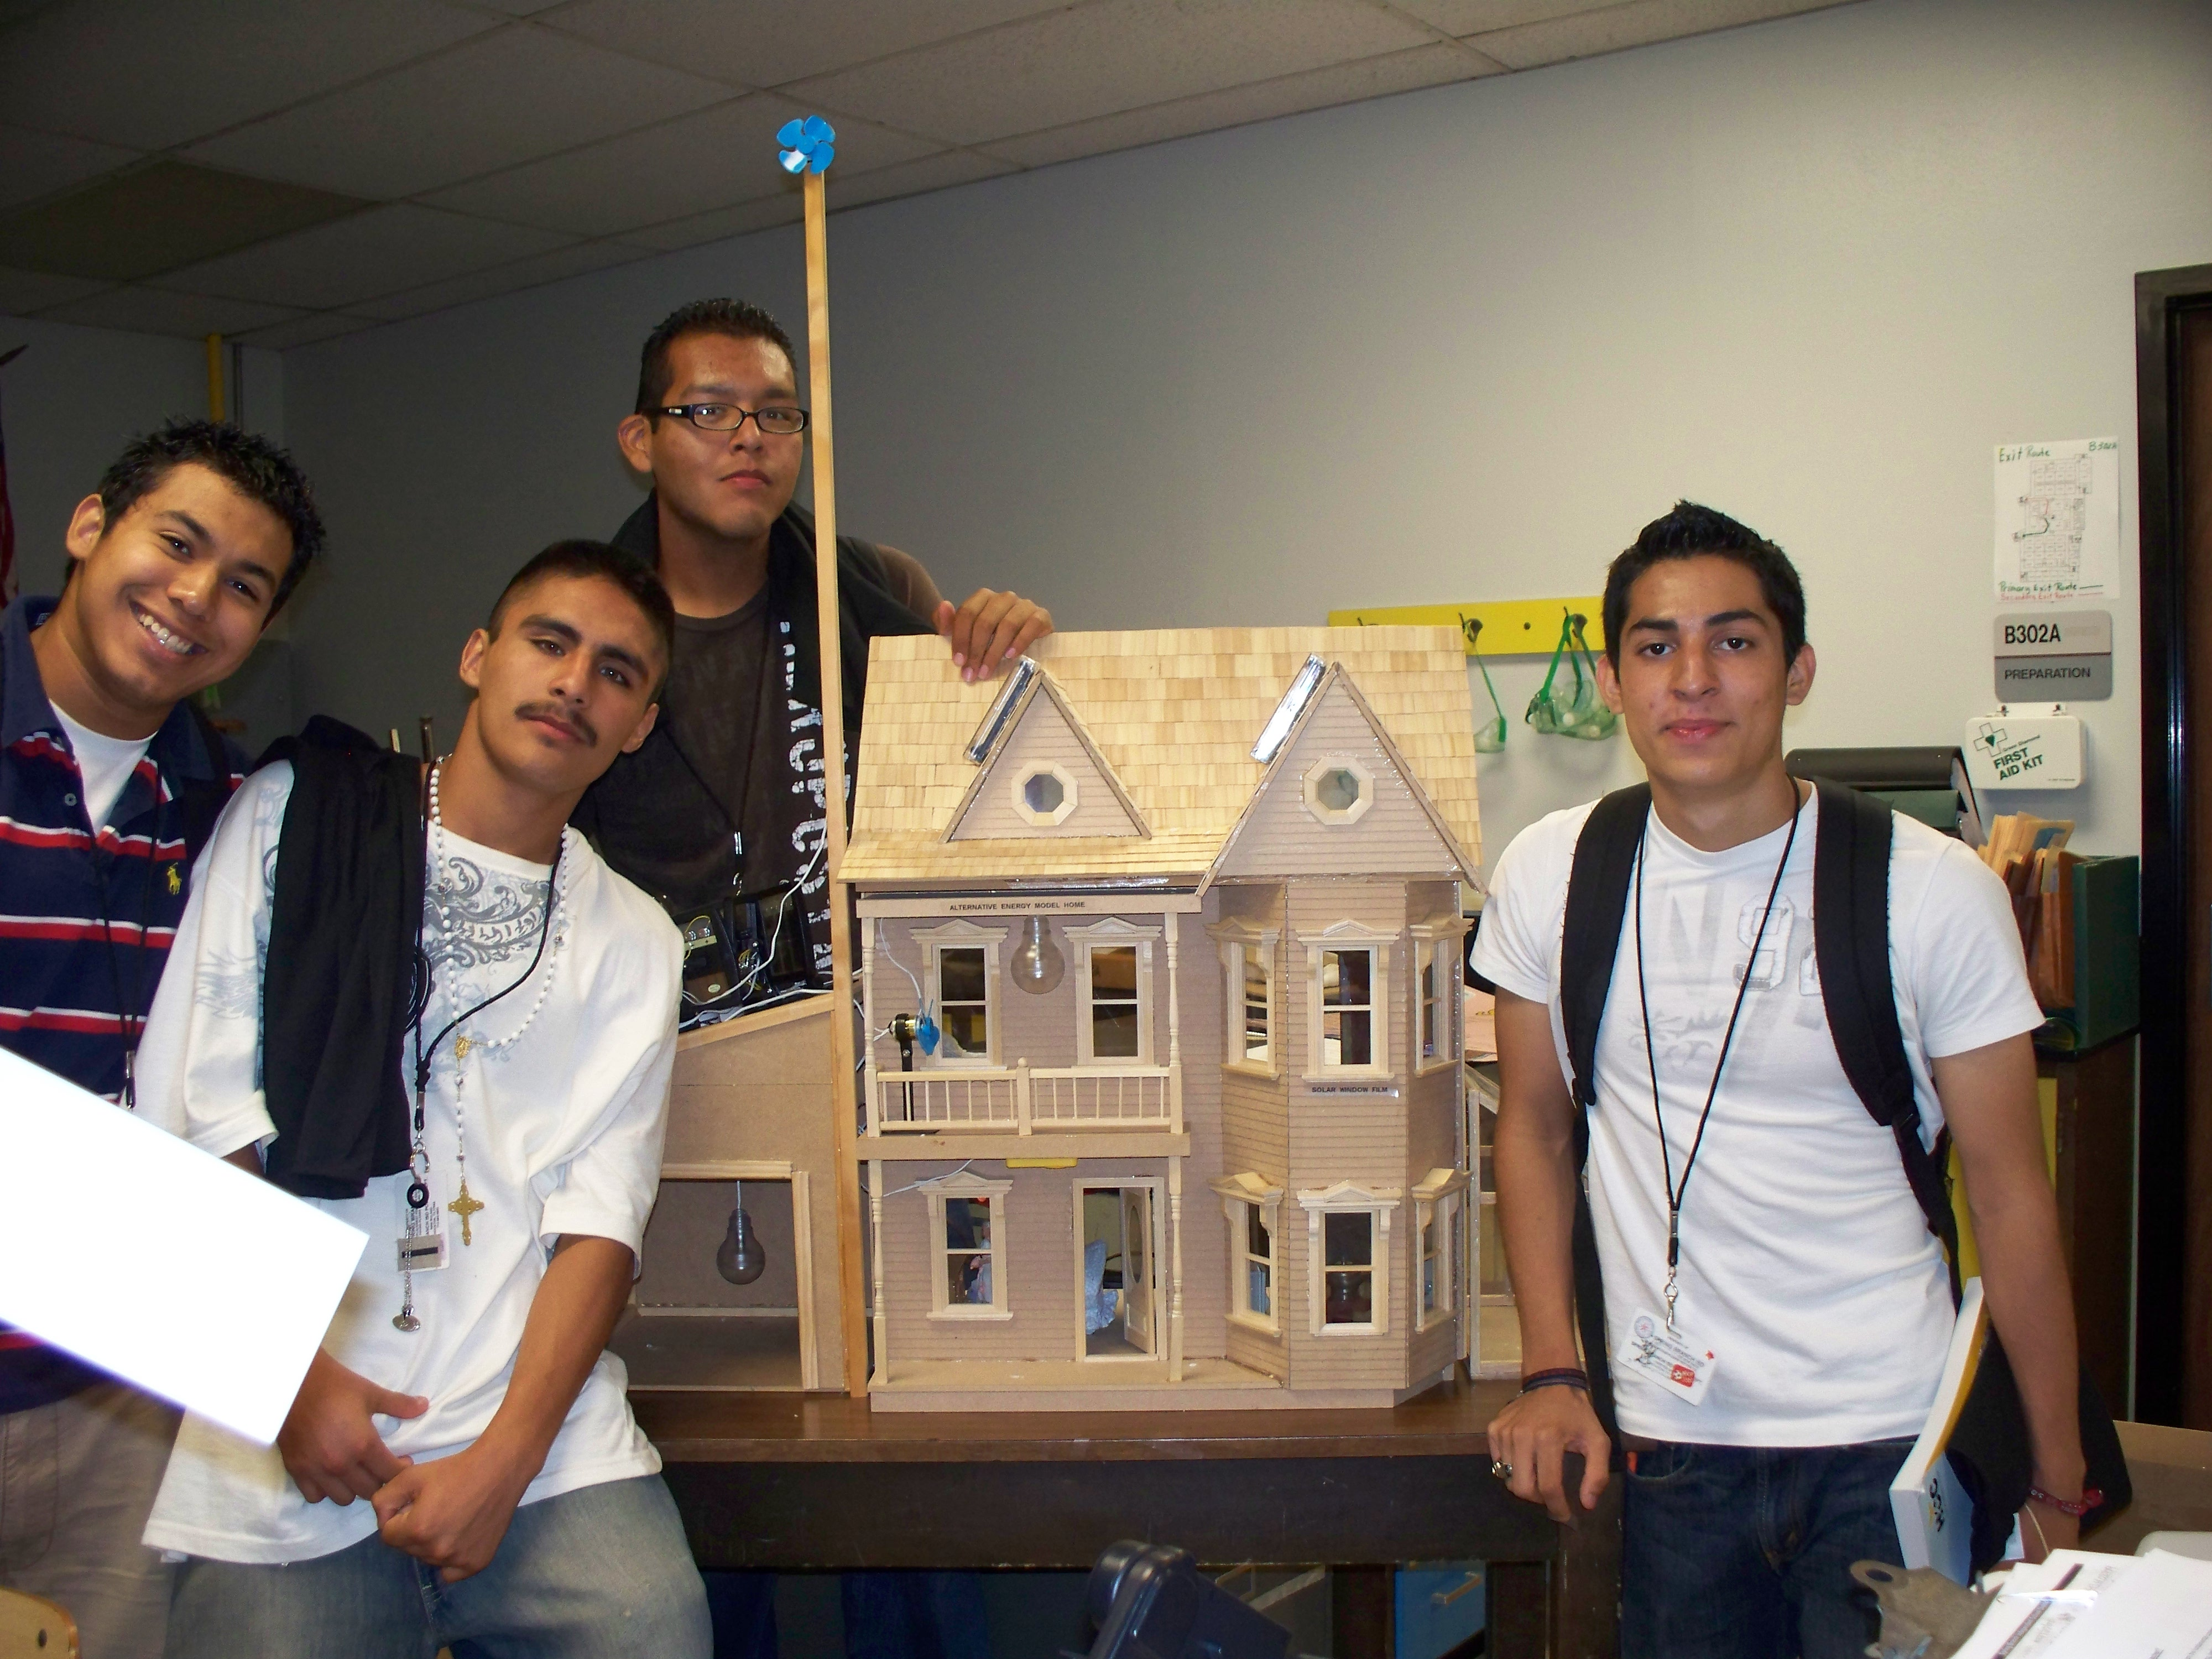 Physics electricity house project